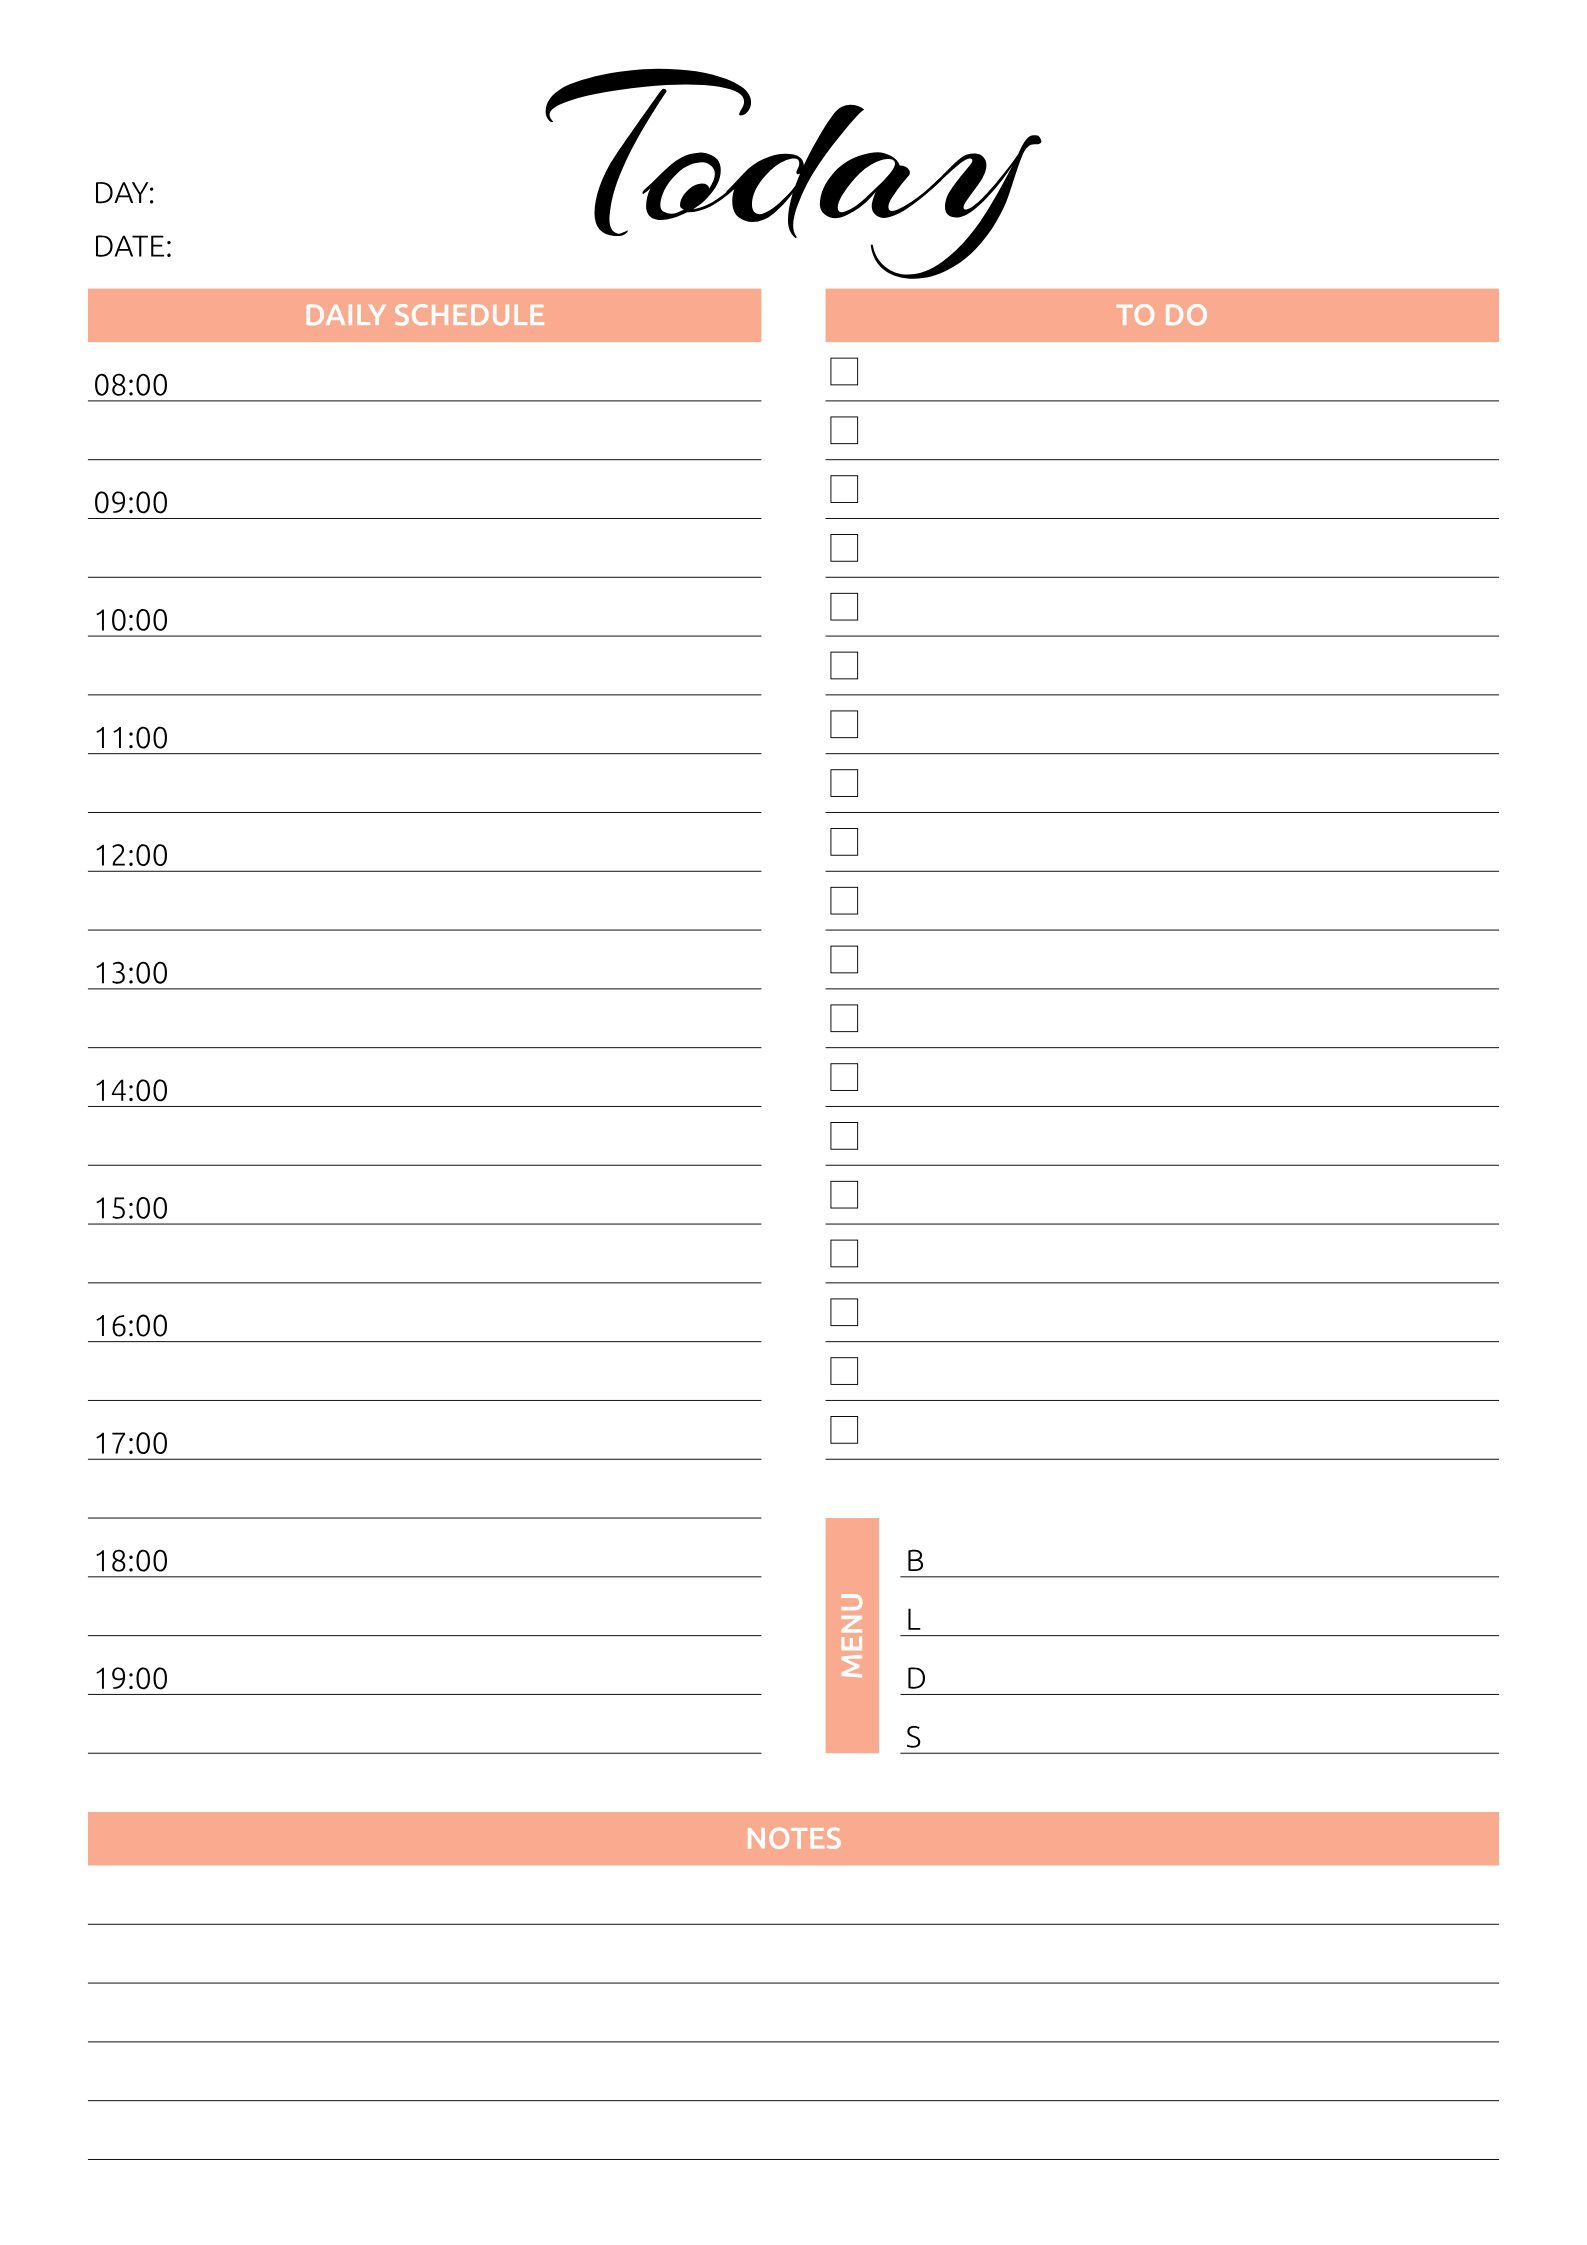 001 Simple Printable Daily Schedule Template High Resolution Full